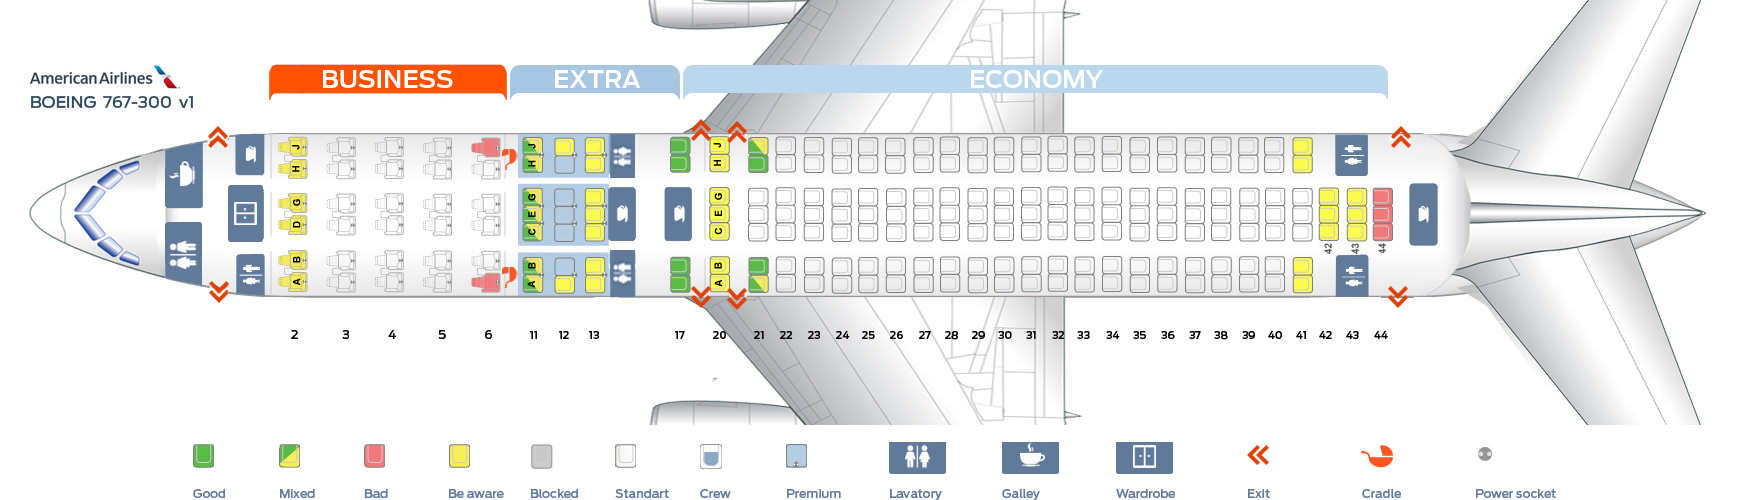 Seat Map Boeing 767300 American Airlines Best Seats In The Plane. First Cabin Version Of The Boeing 767300. Seat. Airplane Seating Schematic At Scoala.co